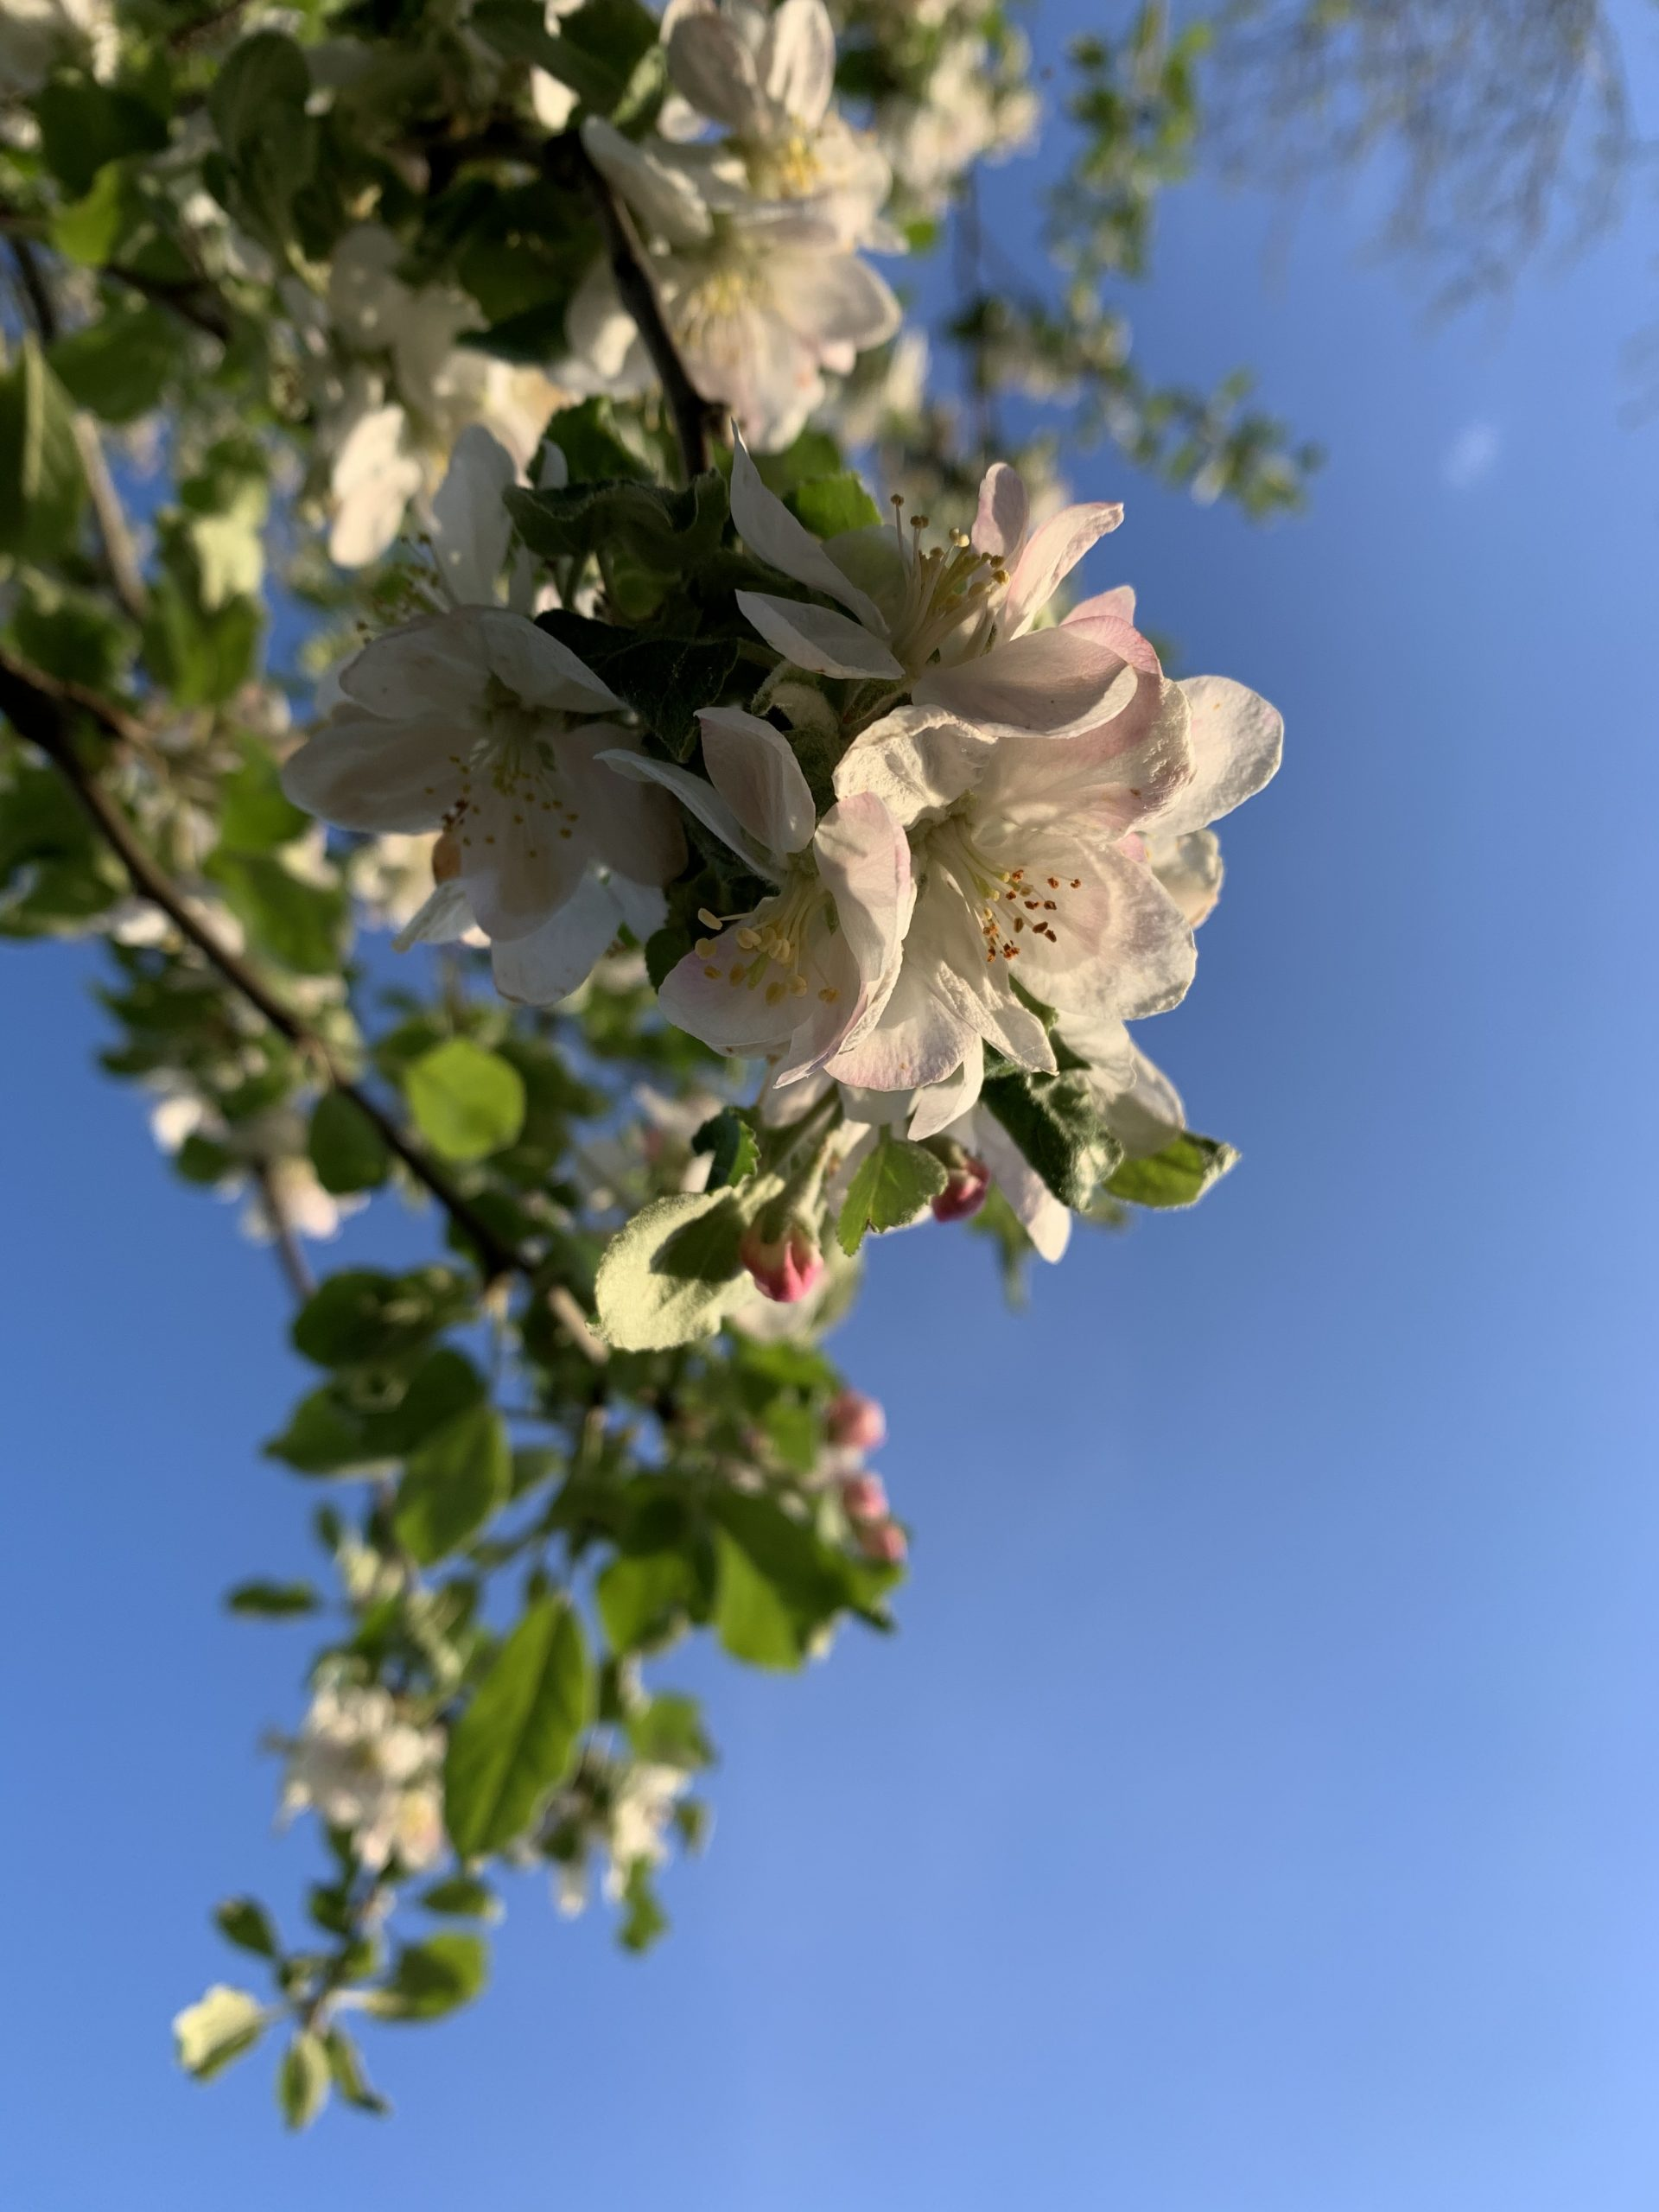 An apple tree in the Fermilab Village is in full bloom. nature, plant, tree, flower, apple Photo: Sudeshna Ganguly